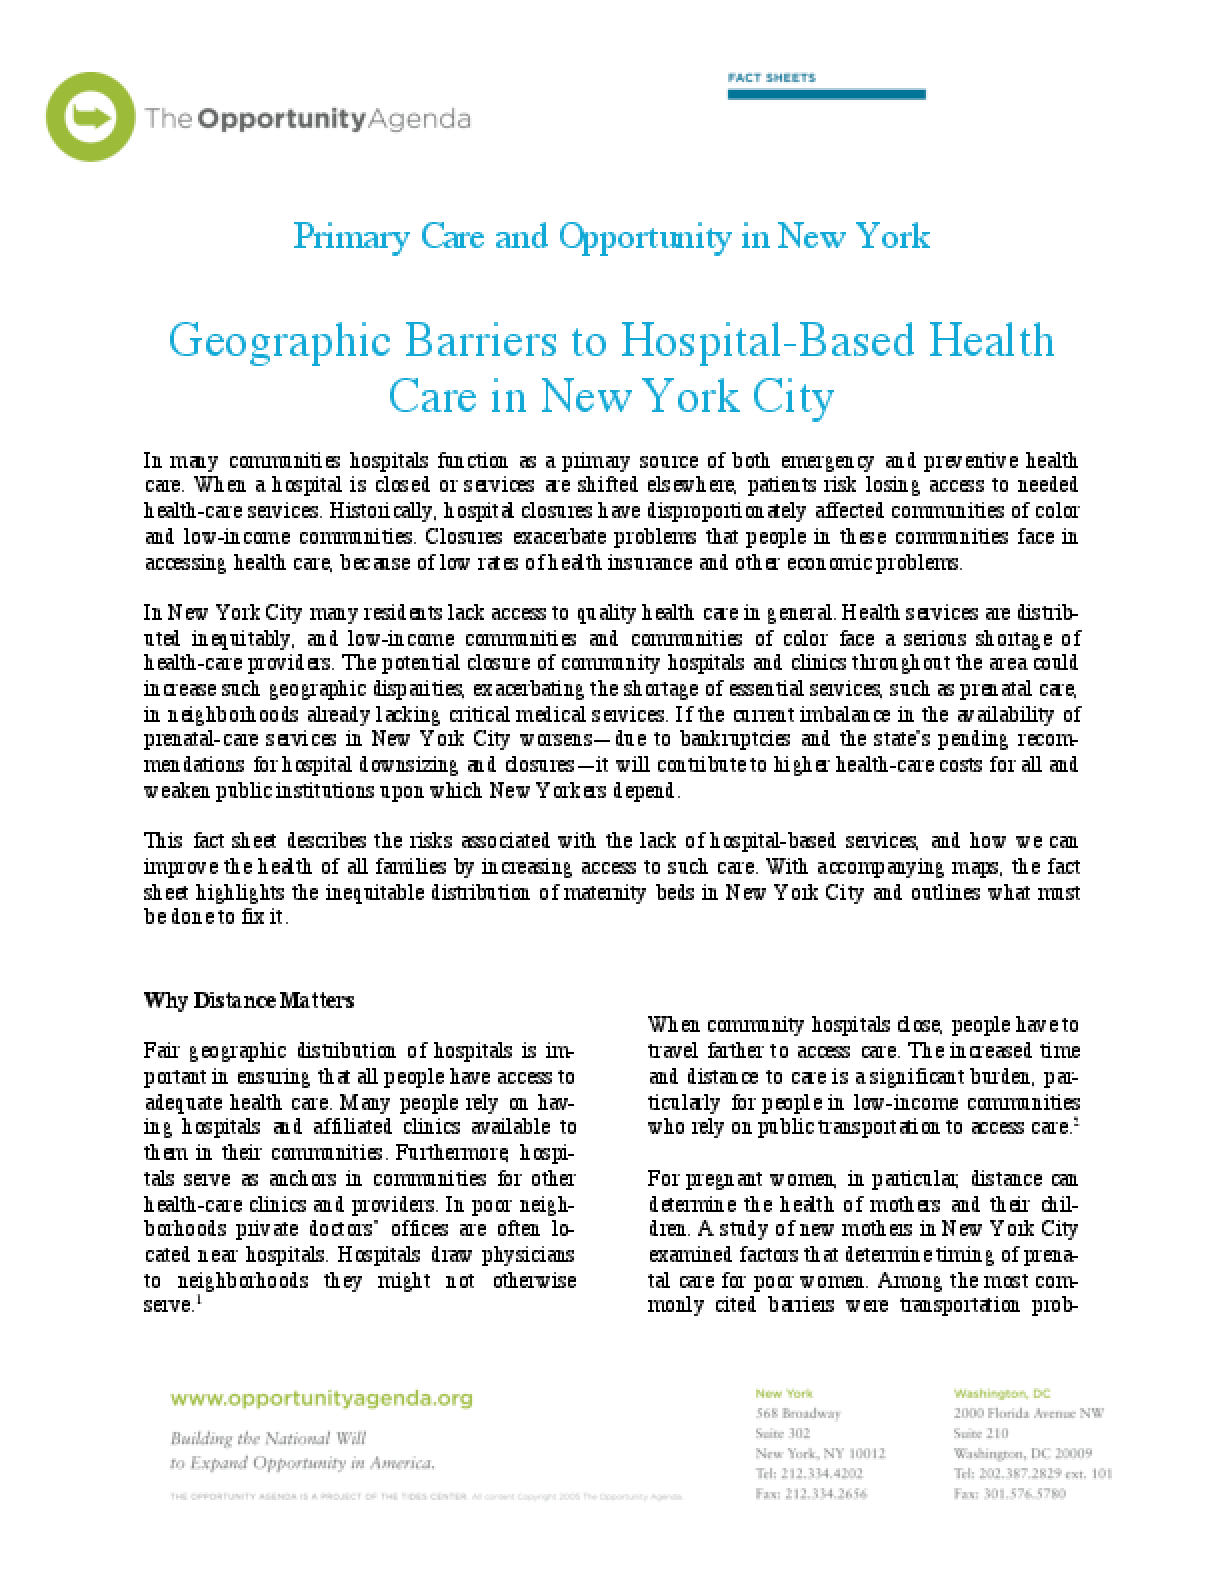 Geographic Barriers to Hospital Based Health Care in New York City